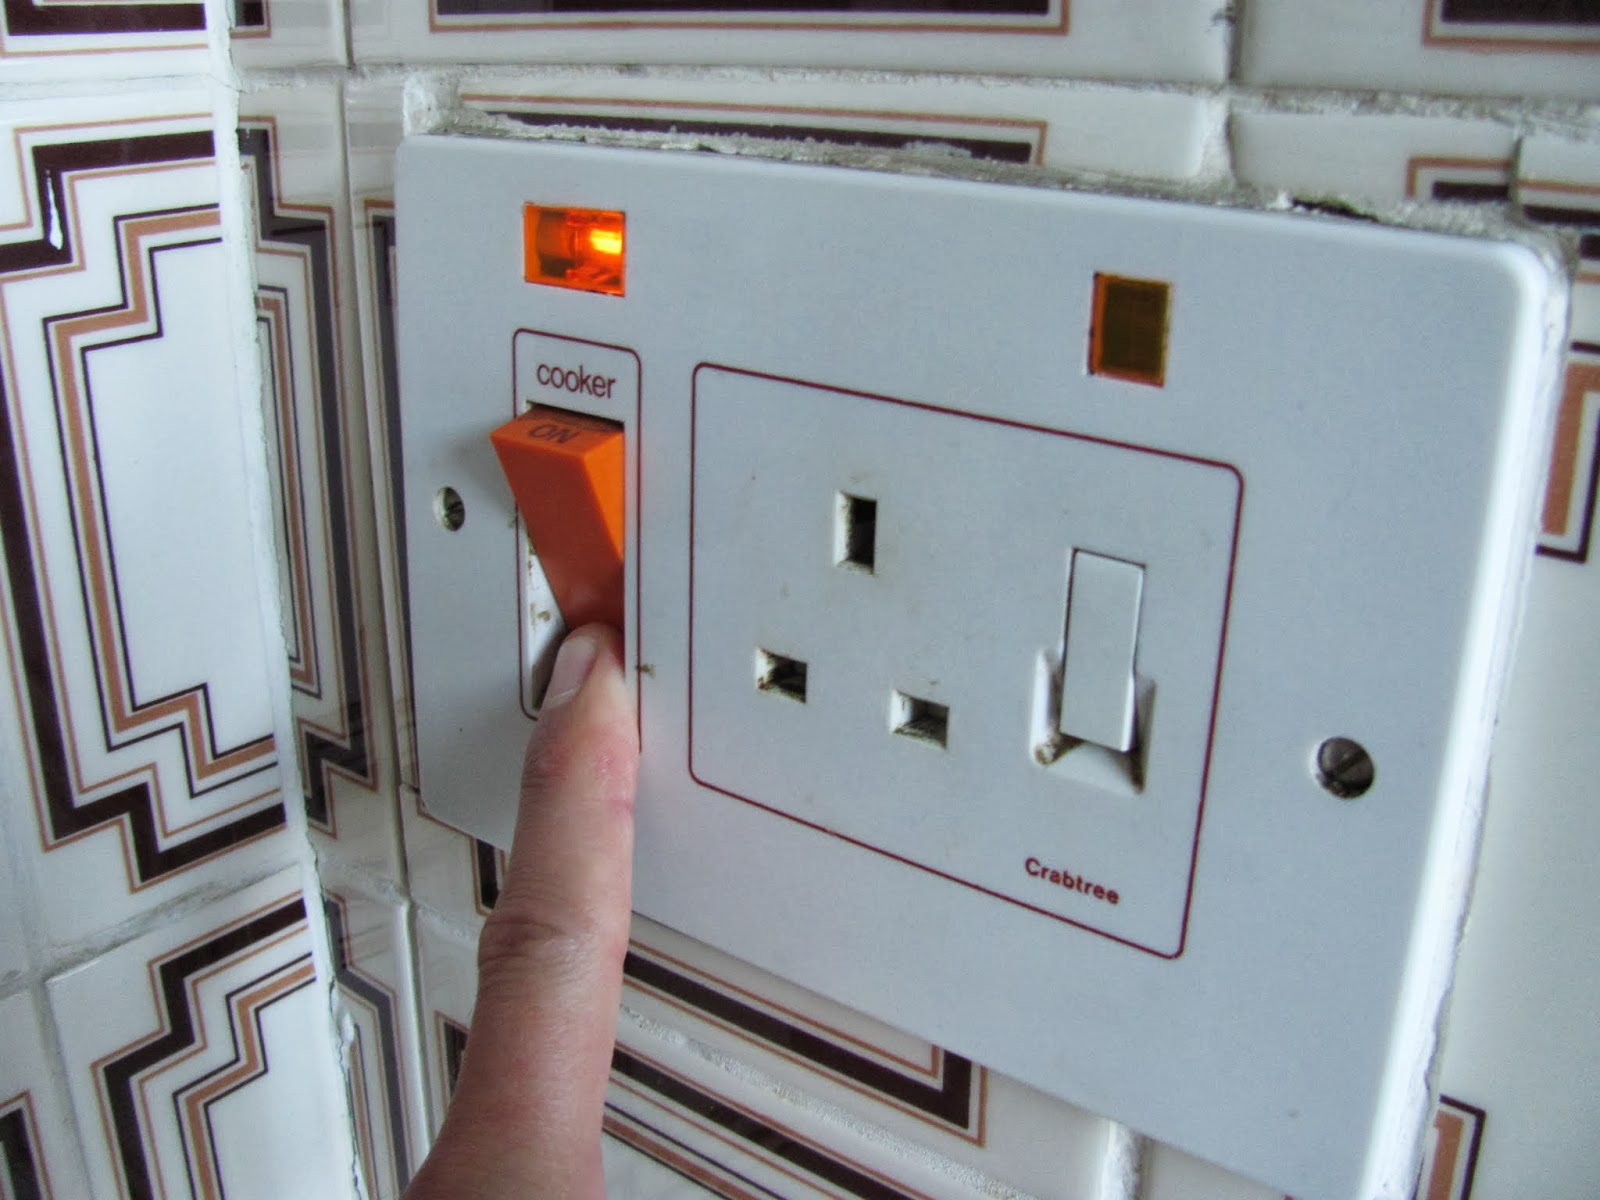 The oven is activated by a special switch on the power wall socket in Dublin, Ireland